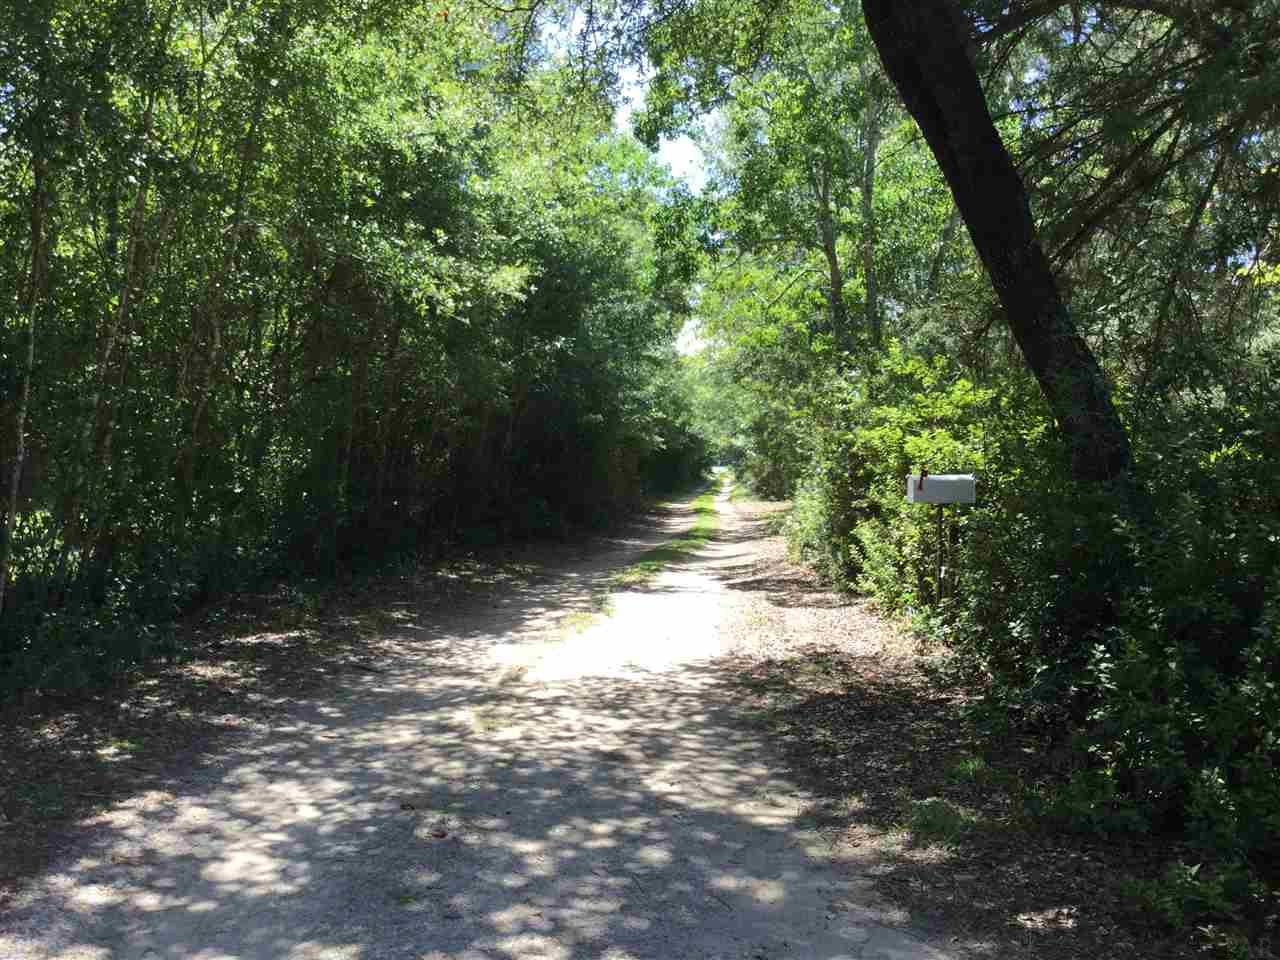 6080 Chumuckla Hwy, Pace, FL 32571